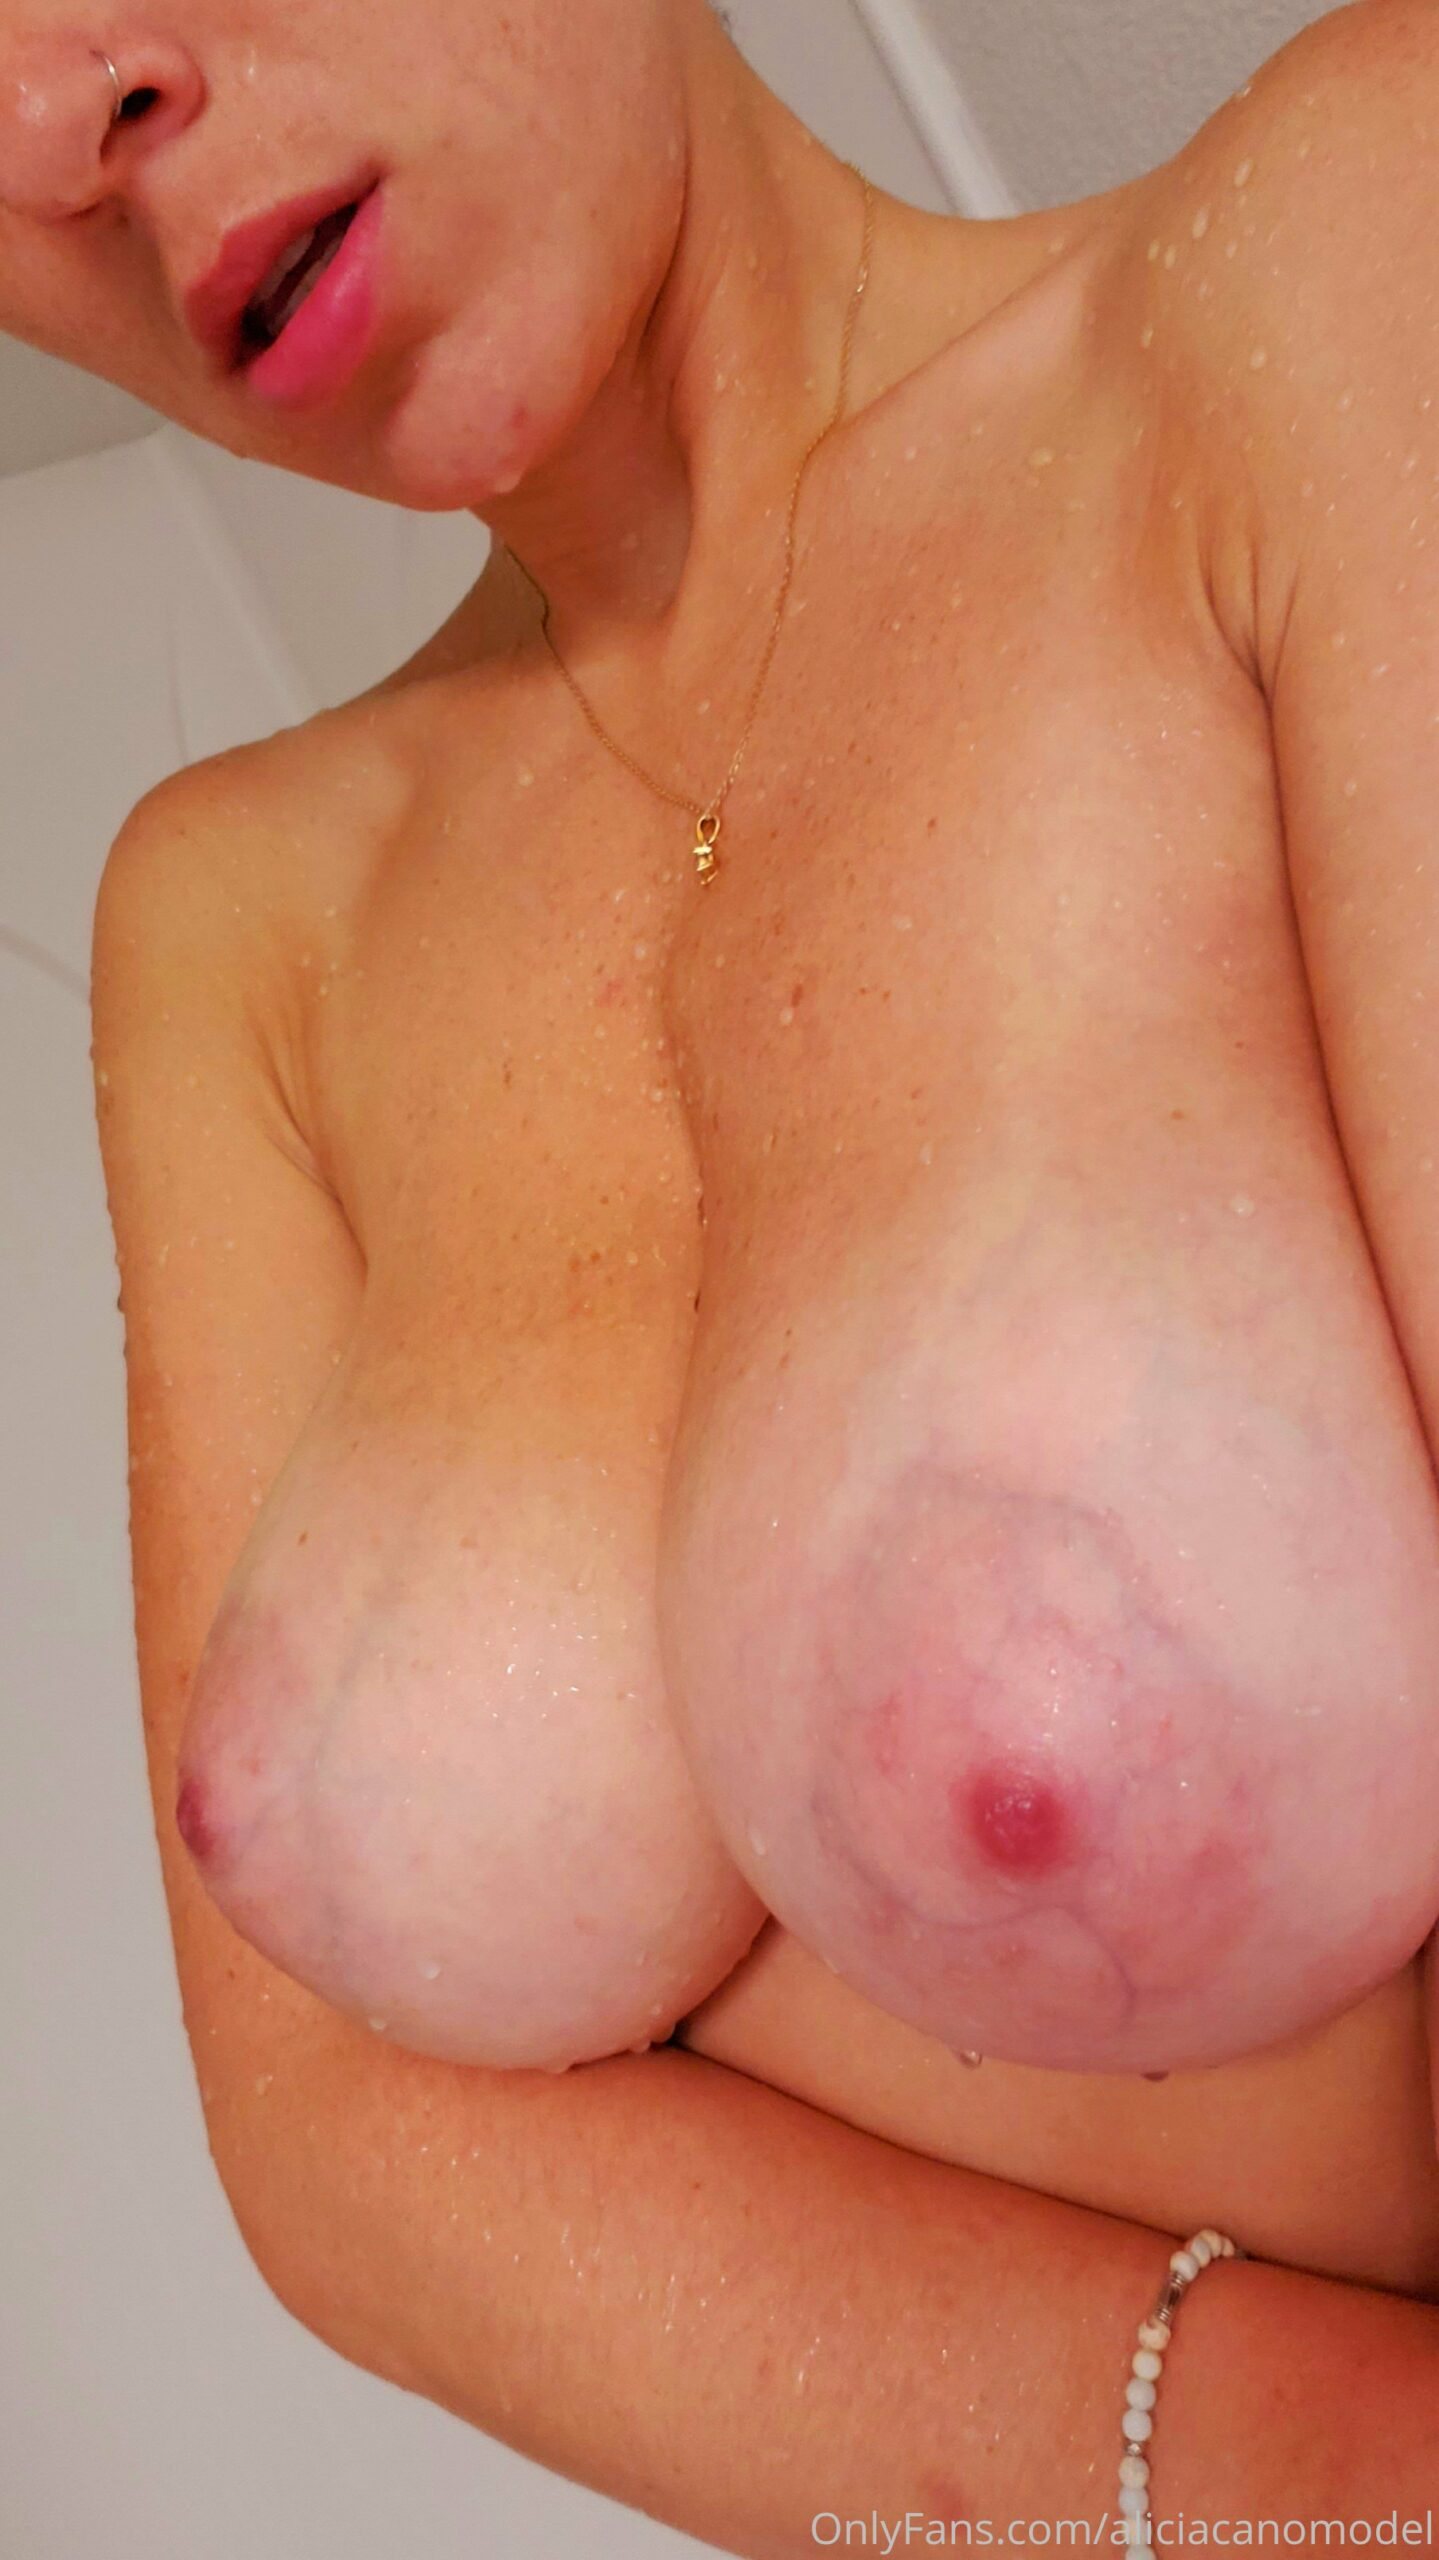 Alicia Cano OnlyFans Nude Leak